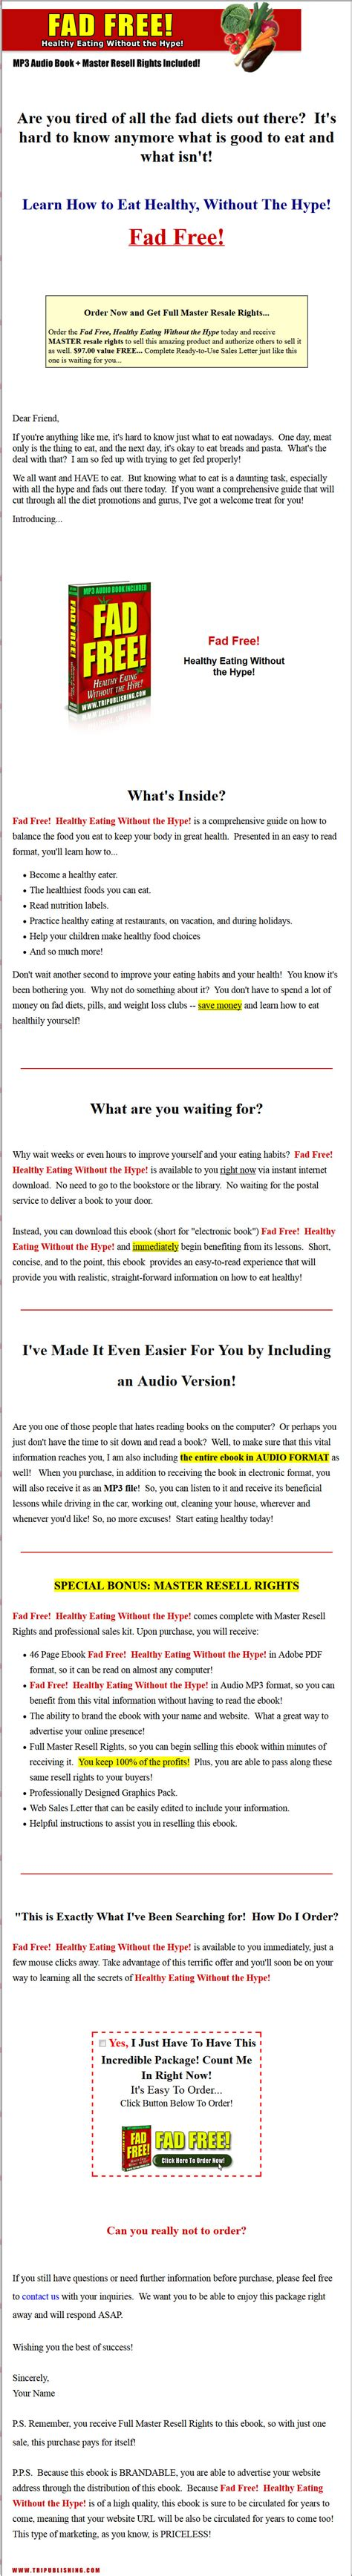 Plr Ebooks With Giveaway Rights - fad free healthy eating plr ebook with private label rights